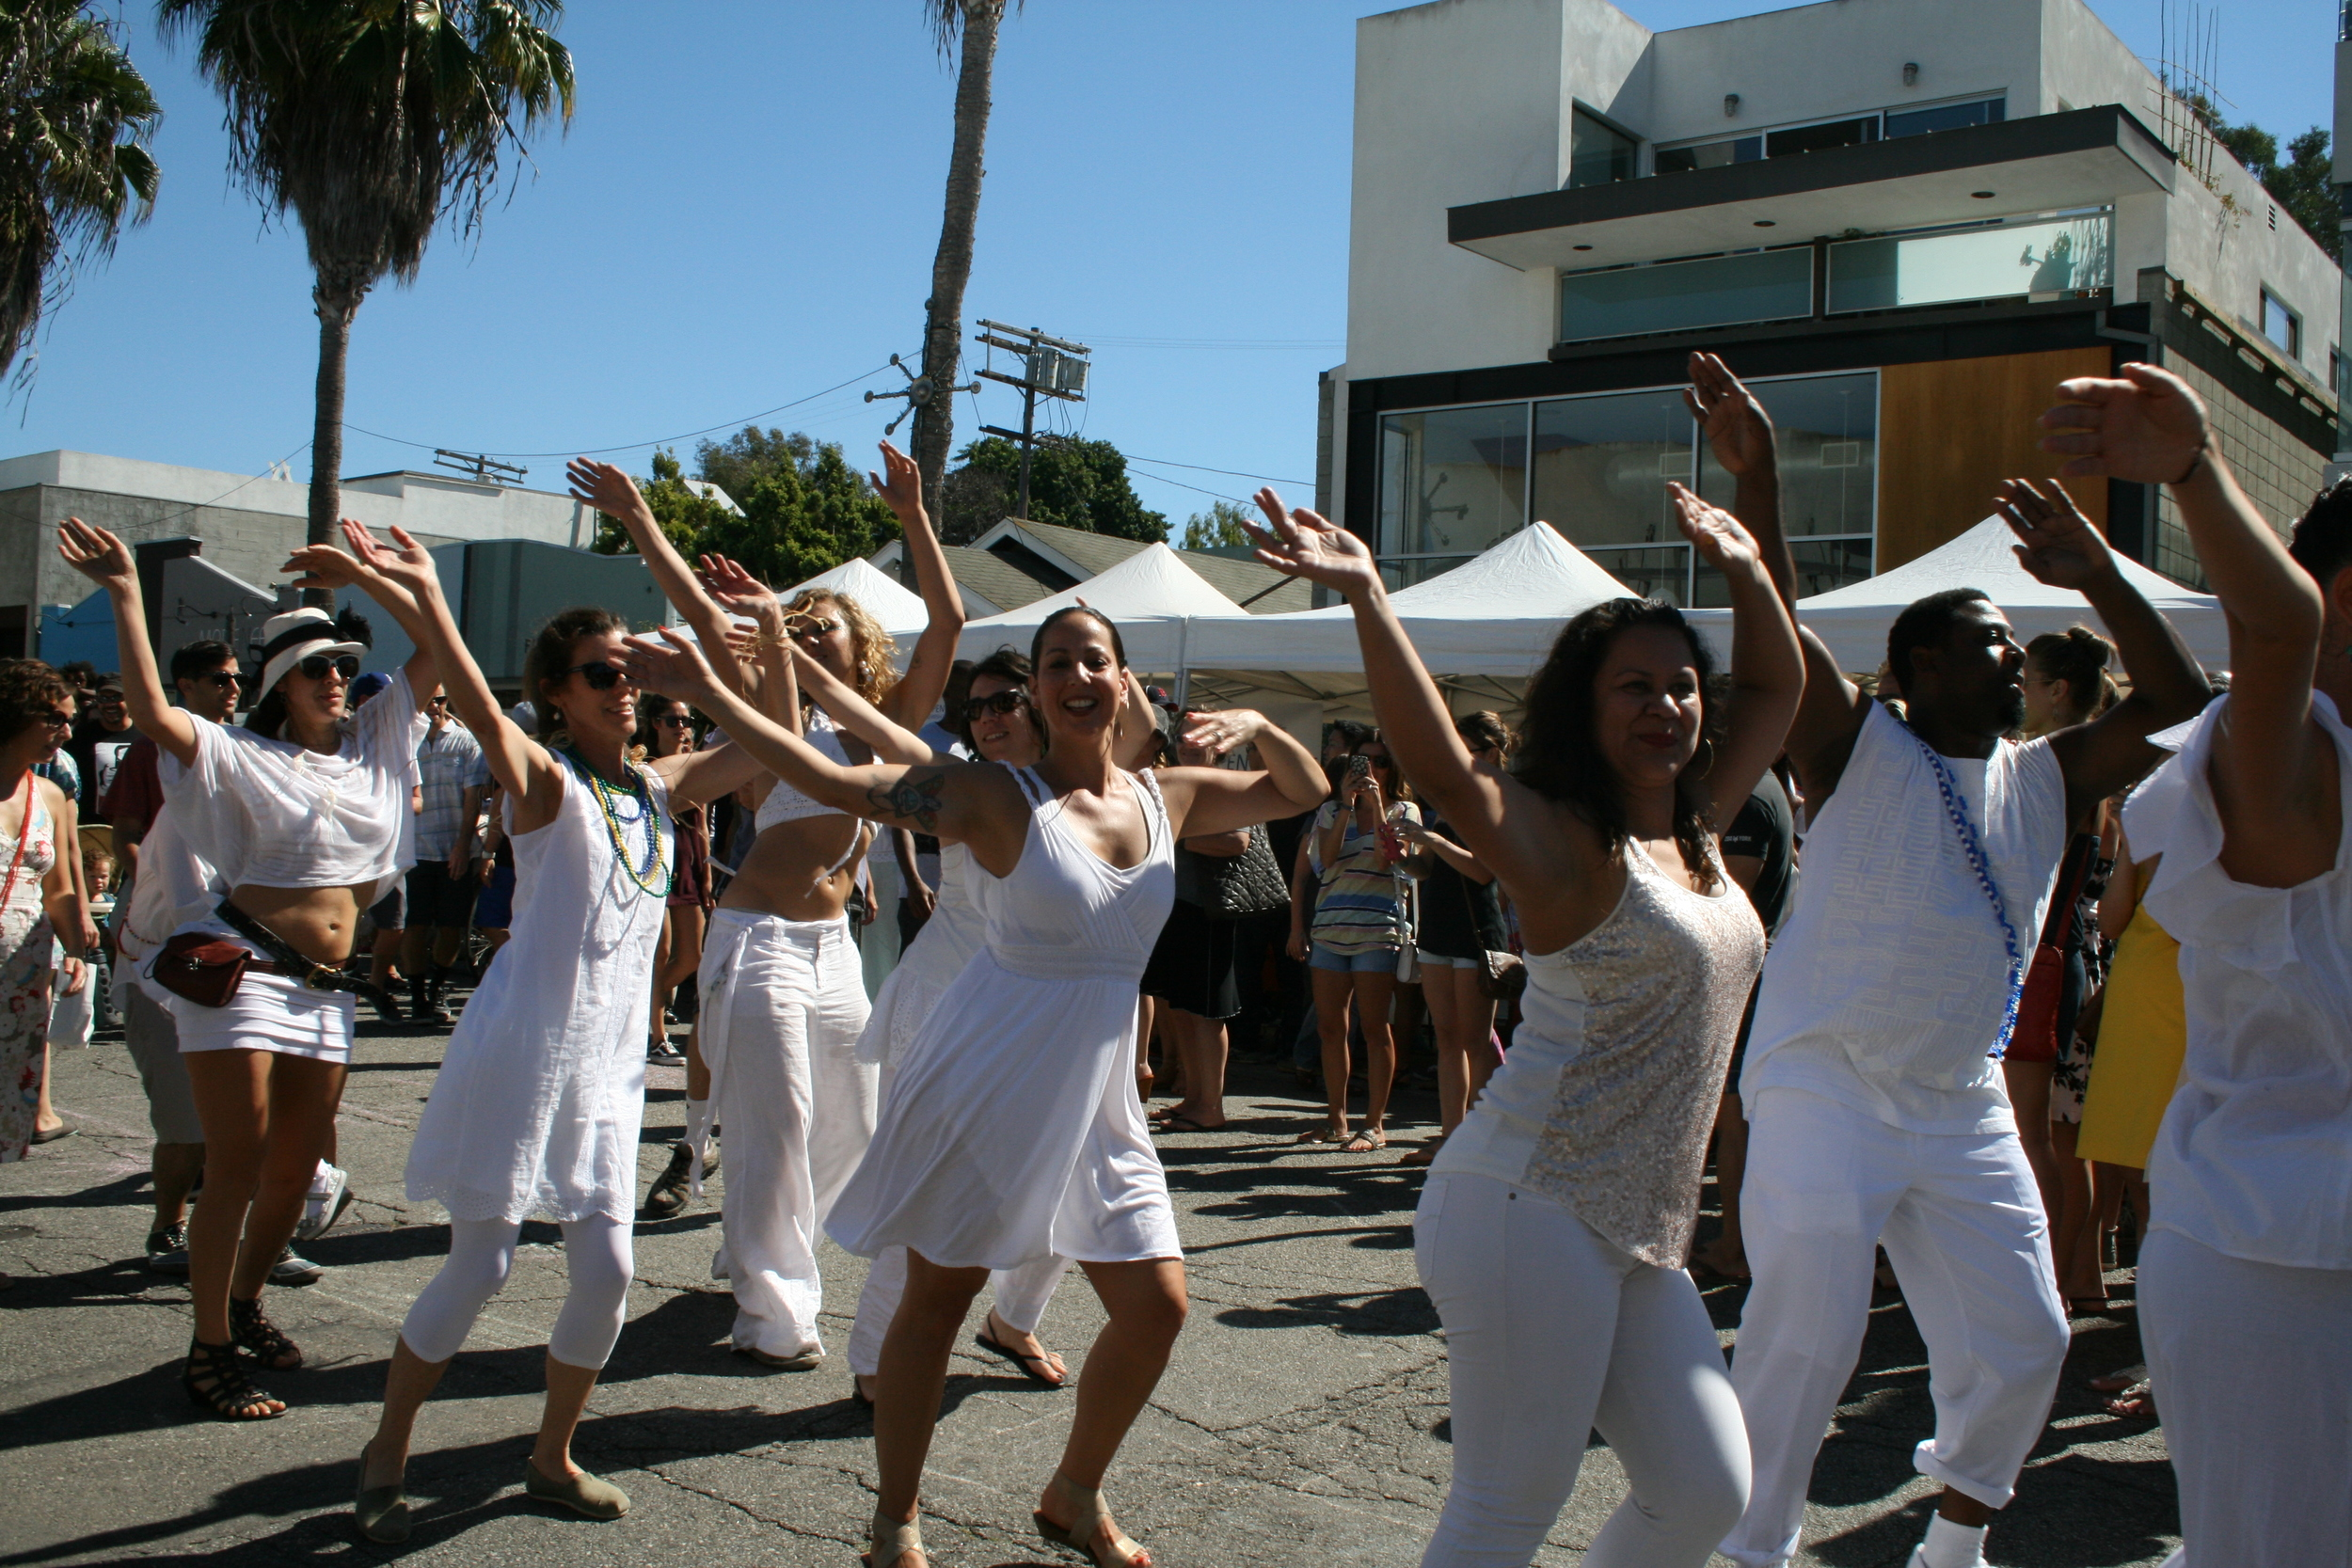 Abbot Kinney Festival drum circle and dancers. (Photo by Kathy Urso)